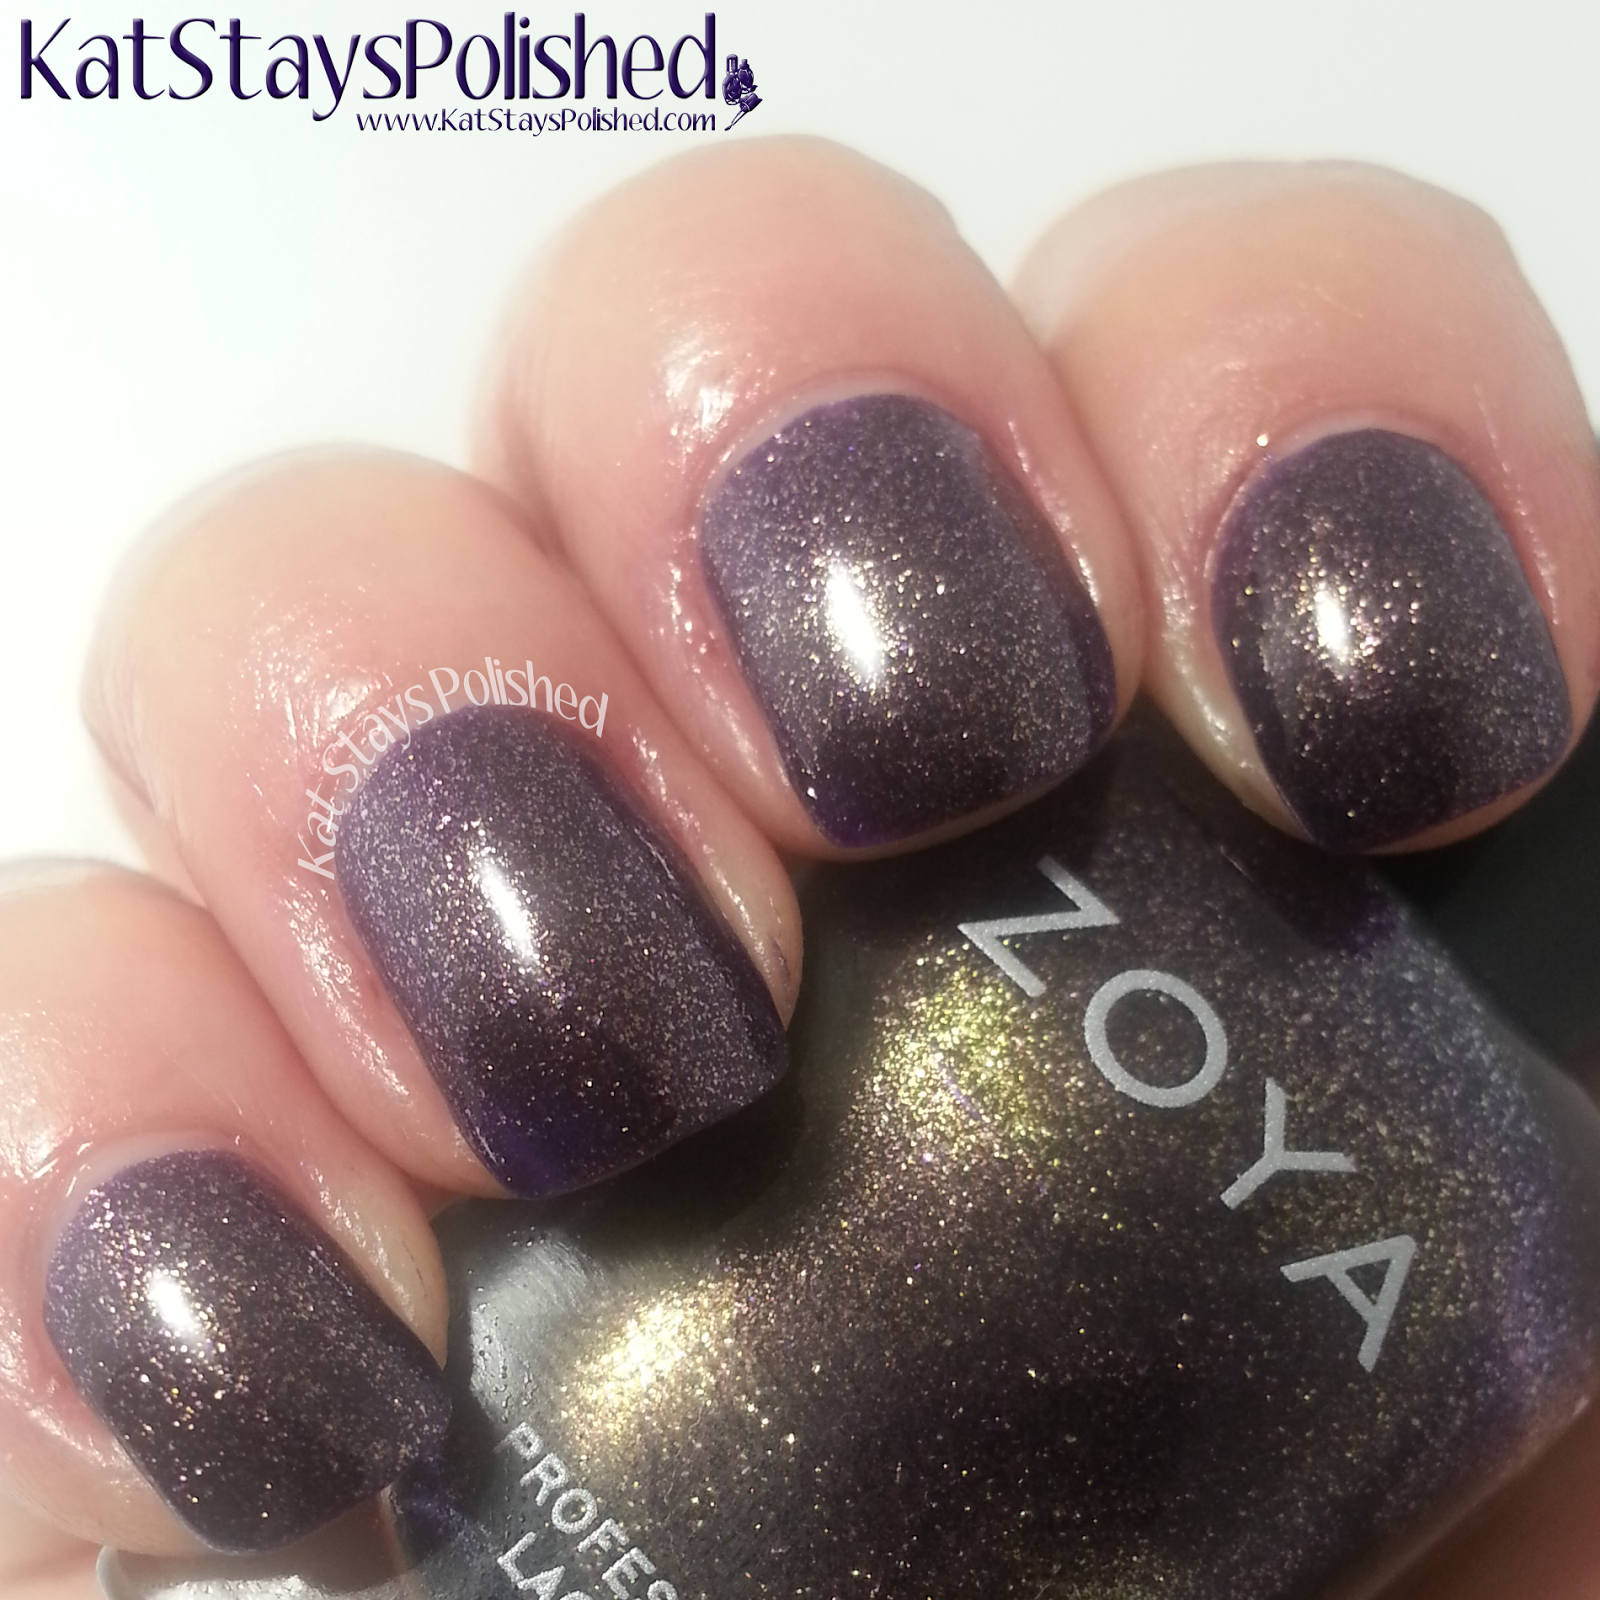 Zoya Ignite 2014 - Sansa | Kat Stays Polished